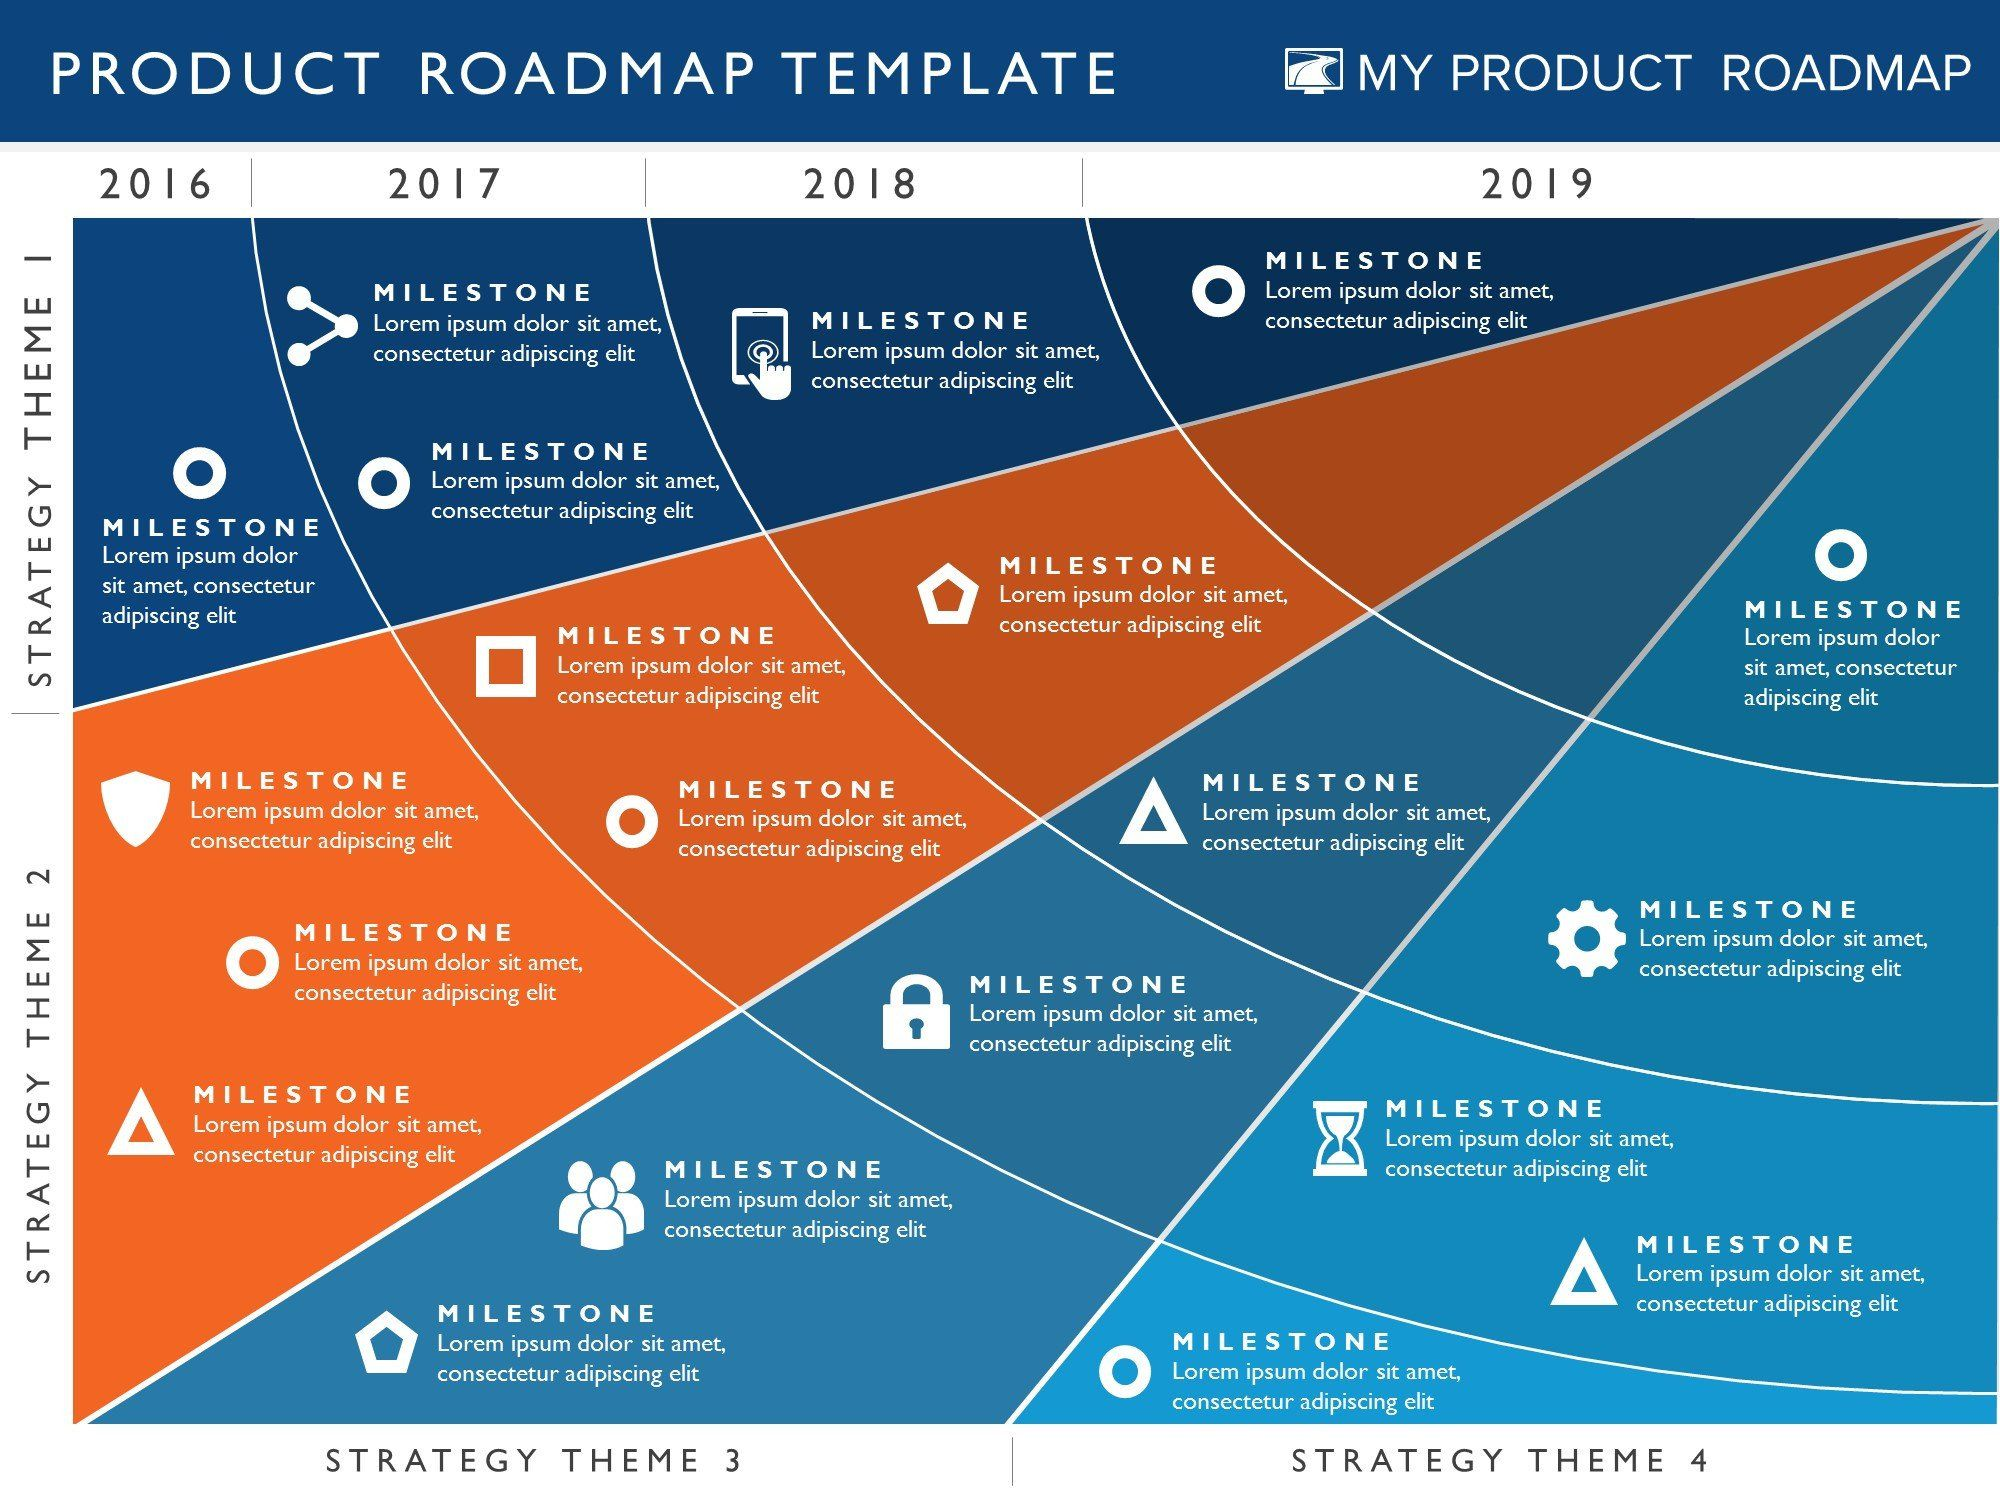 Four Phase Product Strategy Timeline Roadmap Powerpoint Template Strategic Planning Template Roadmap Roadmap Infographic Free product roadmap template powerpoint